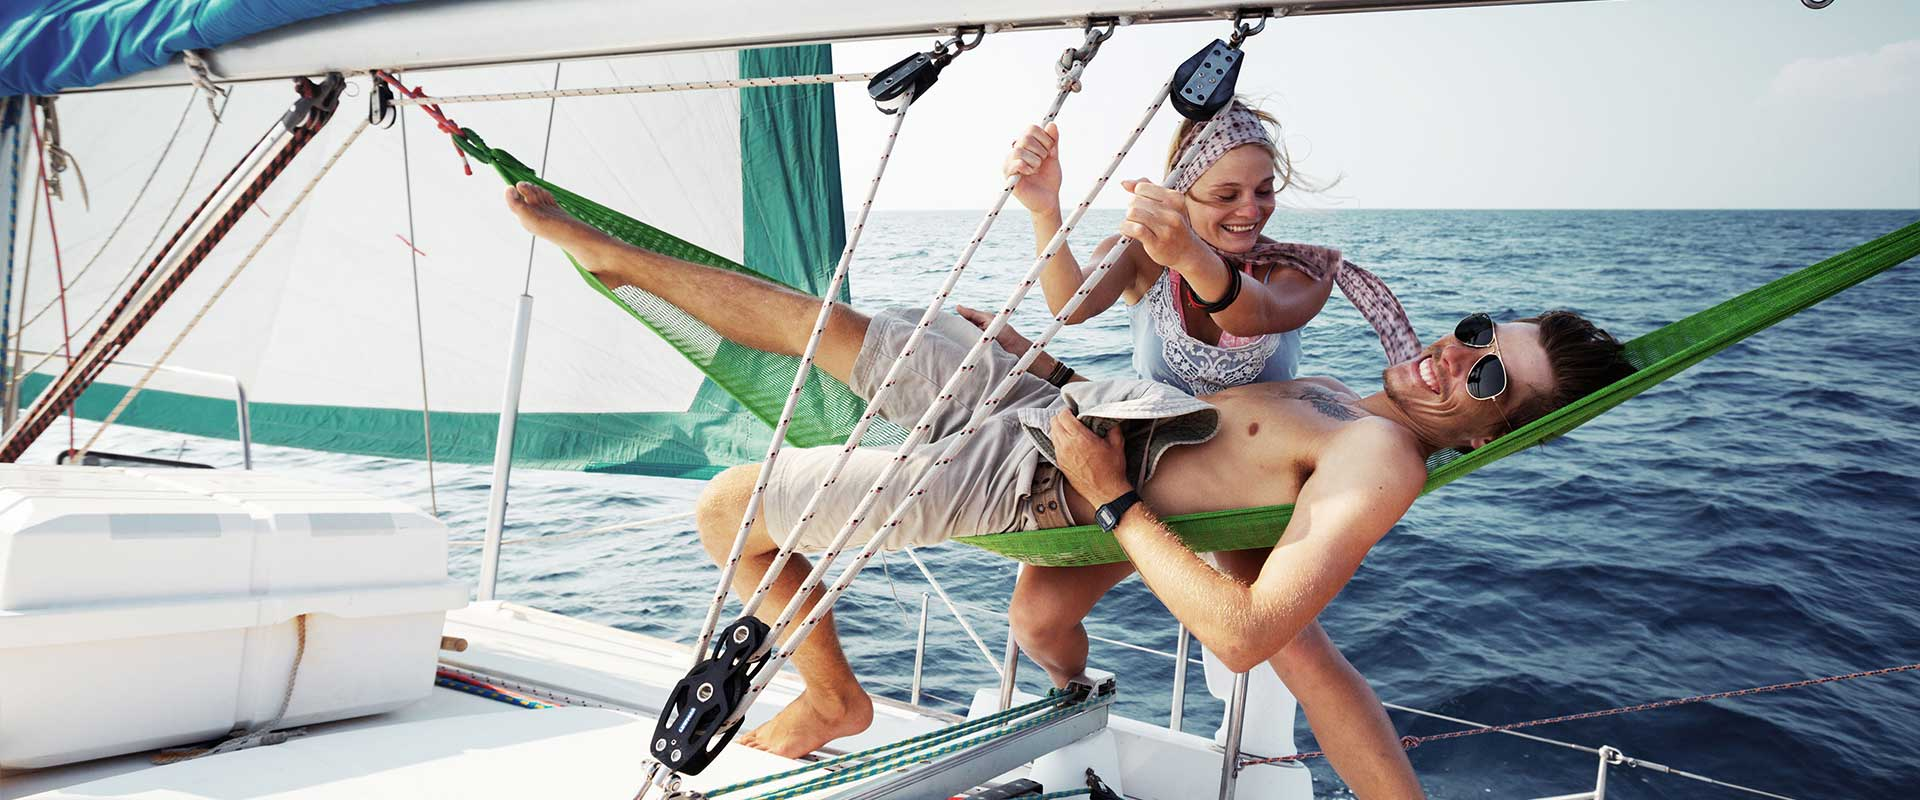 lounging in hammock on sailboat